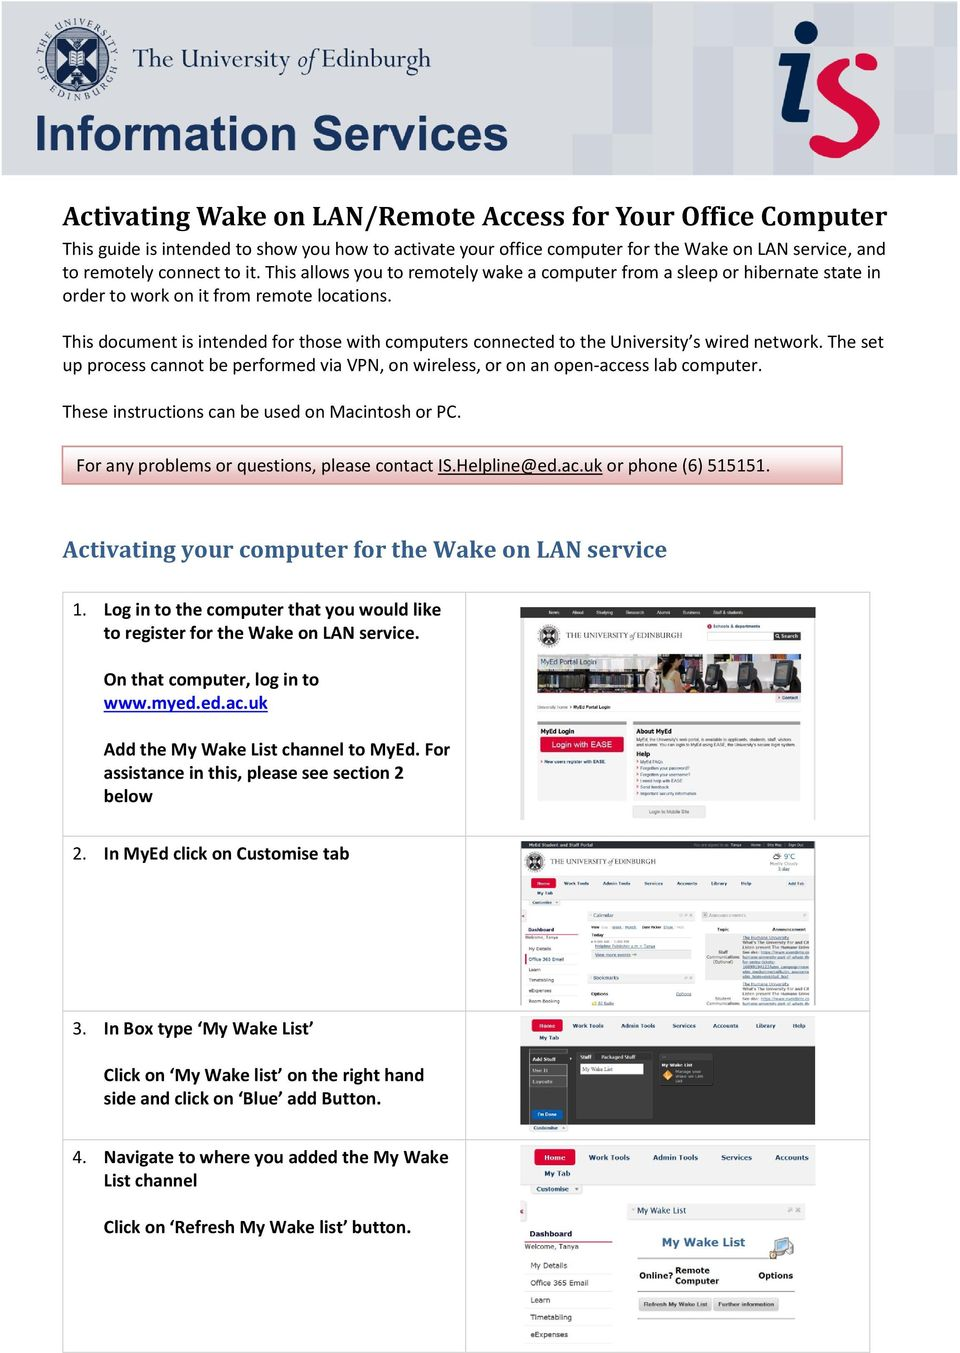 Activating Wake on LAN/Remote Access for Your Office